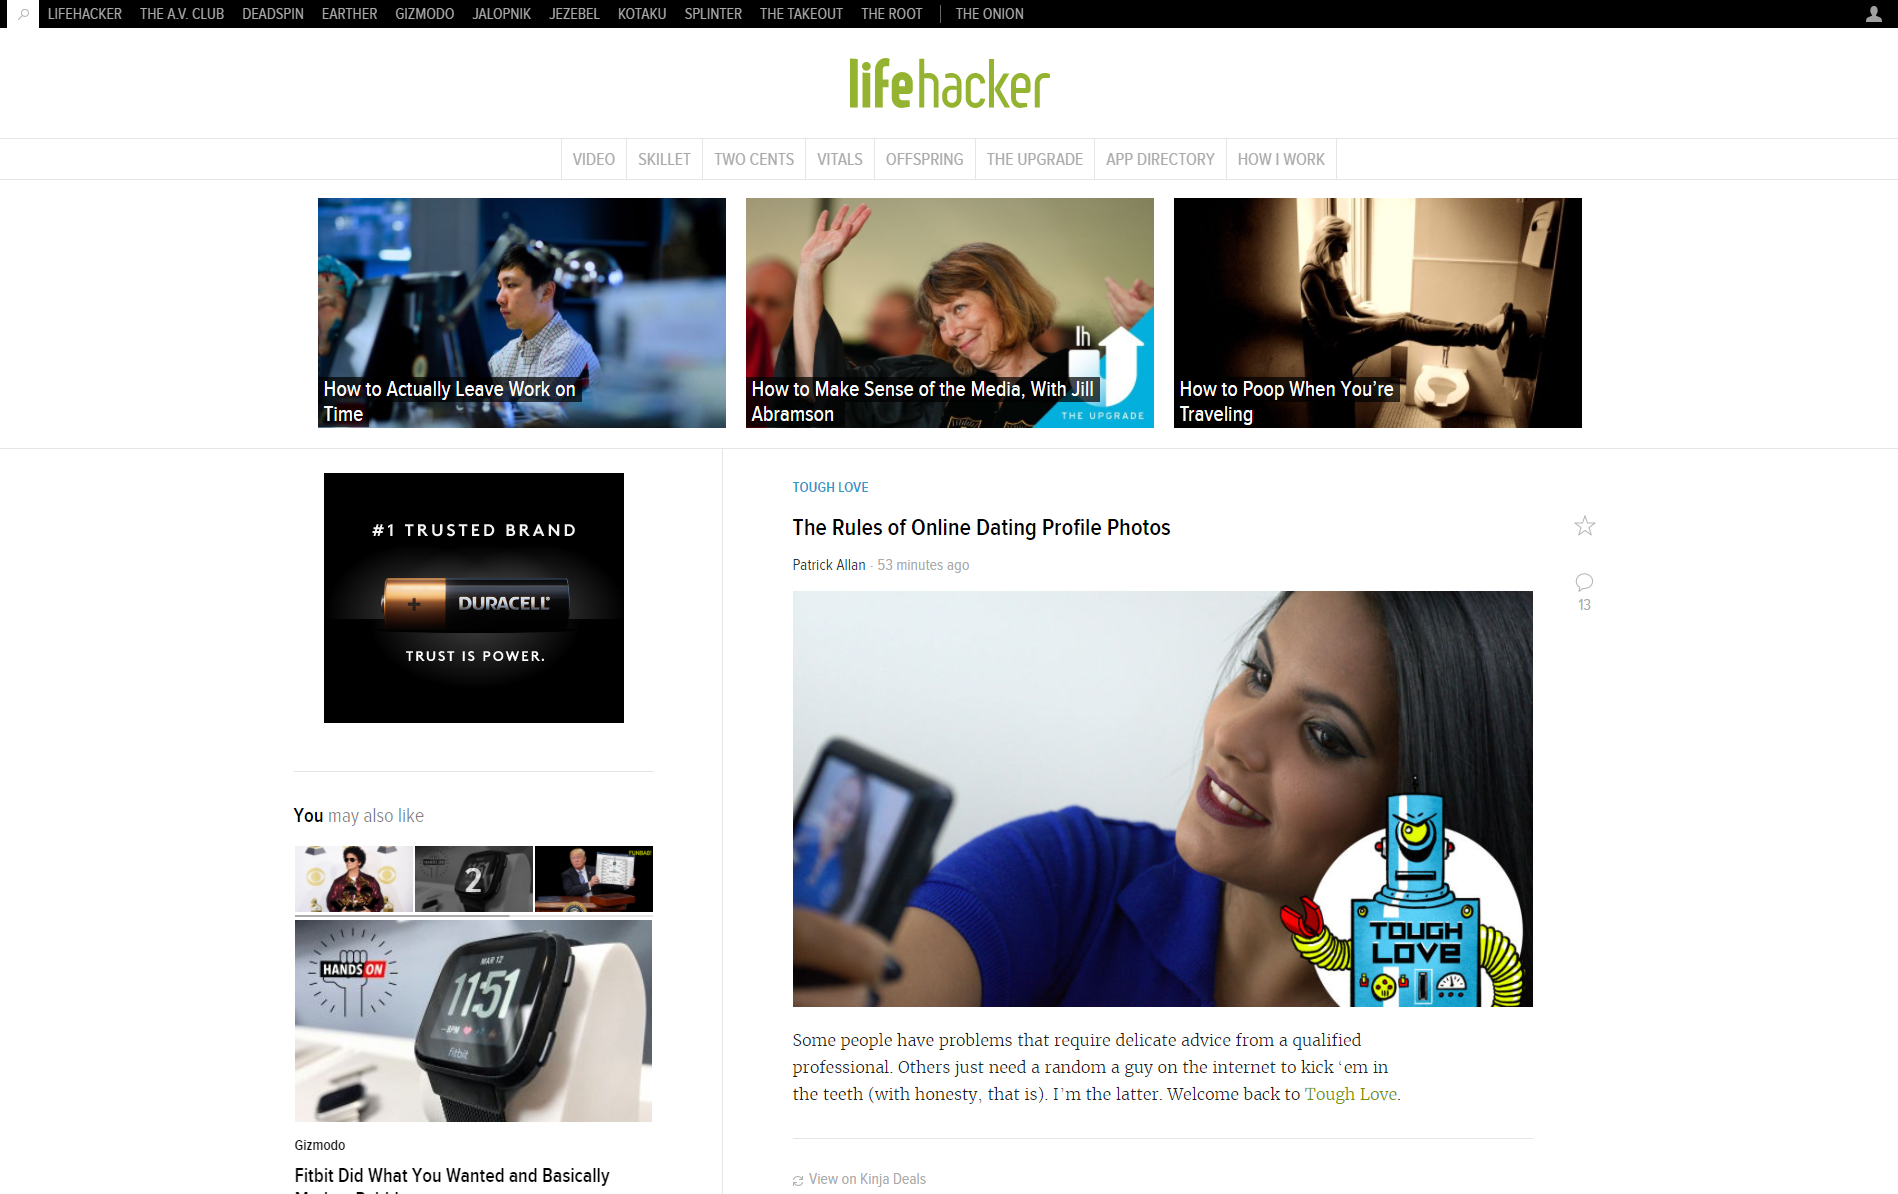 Lifehacker online dating profile